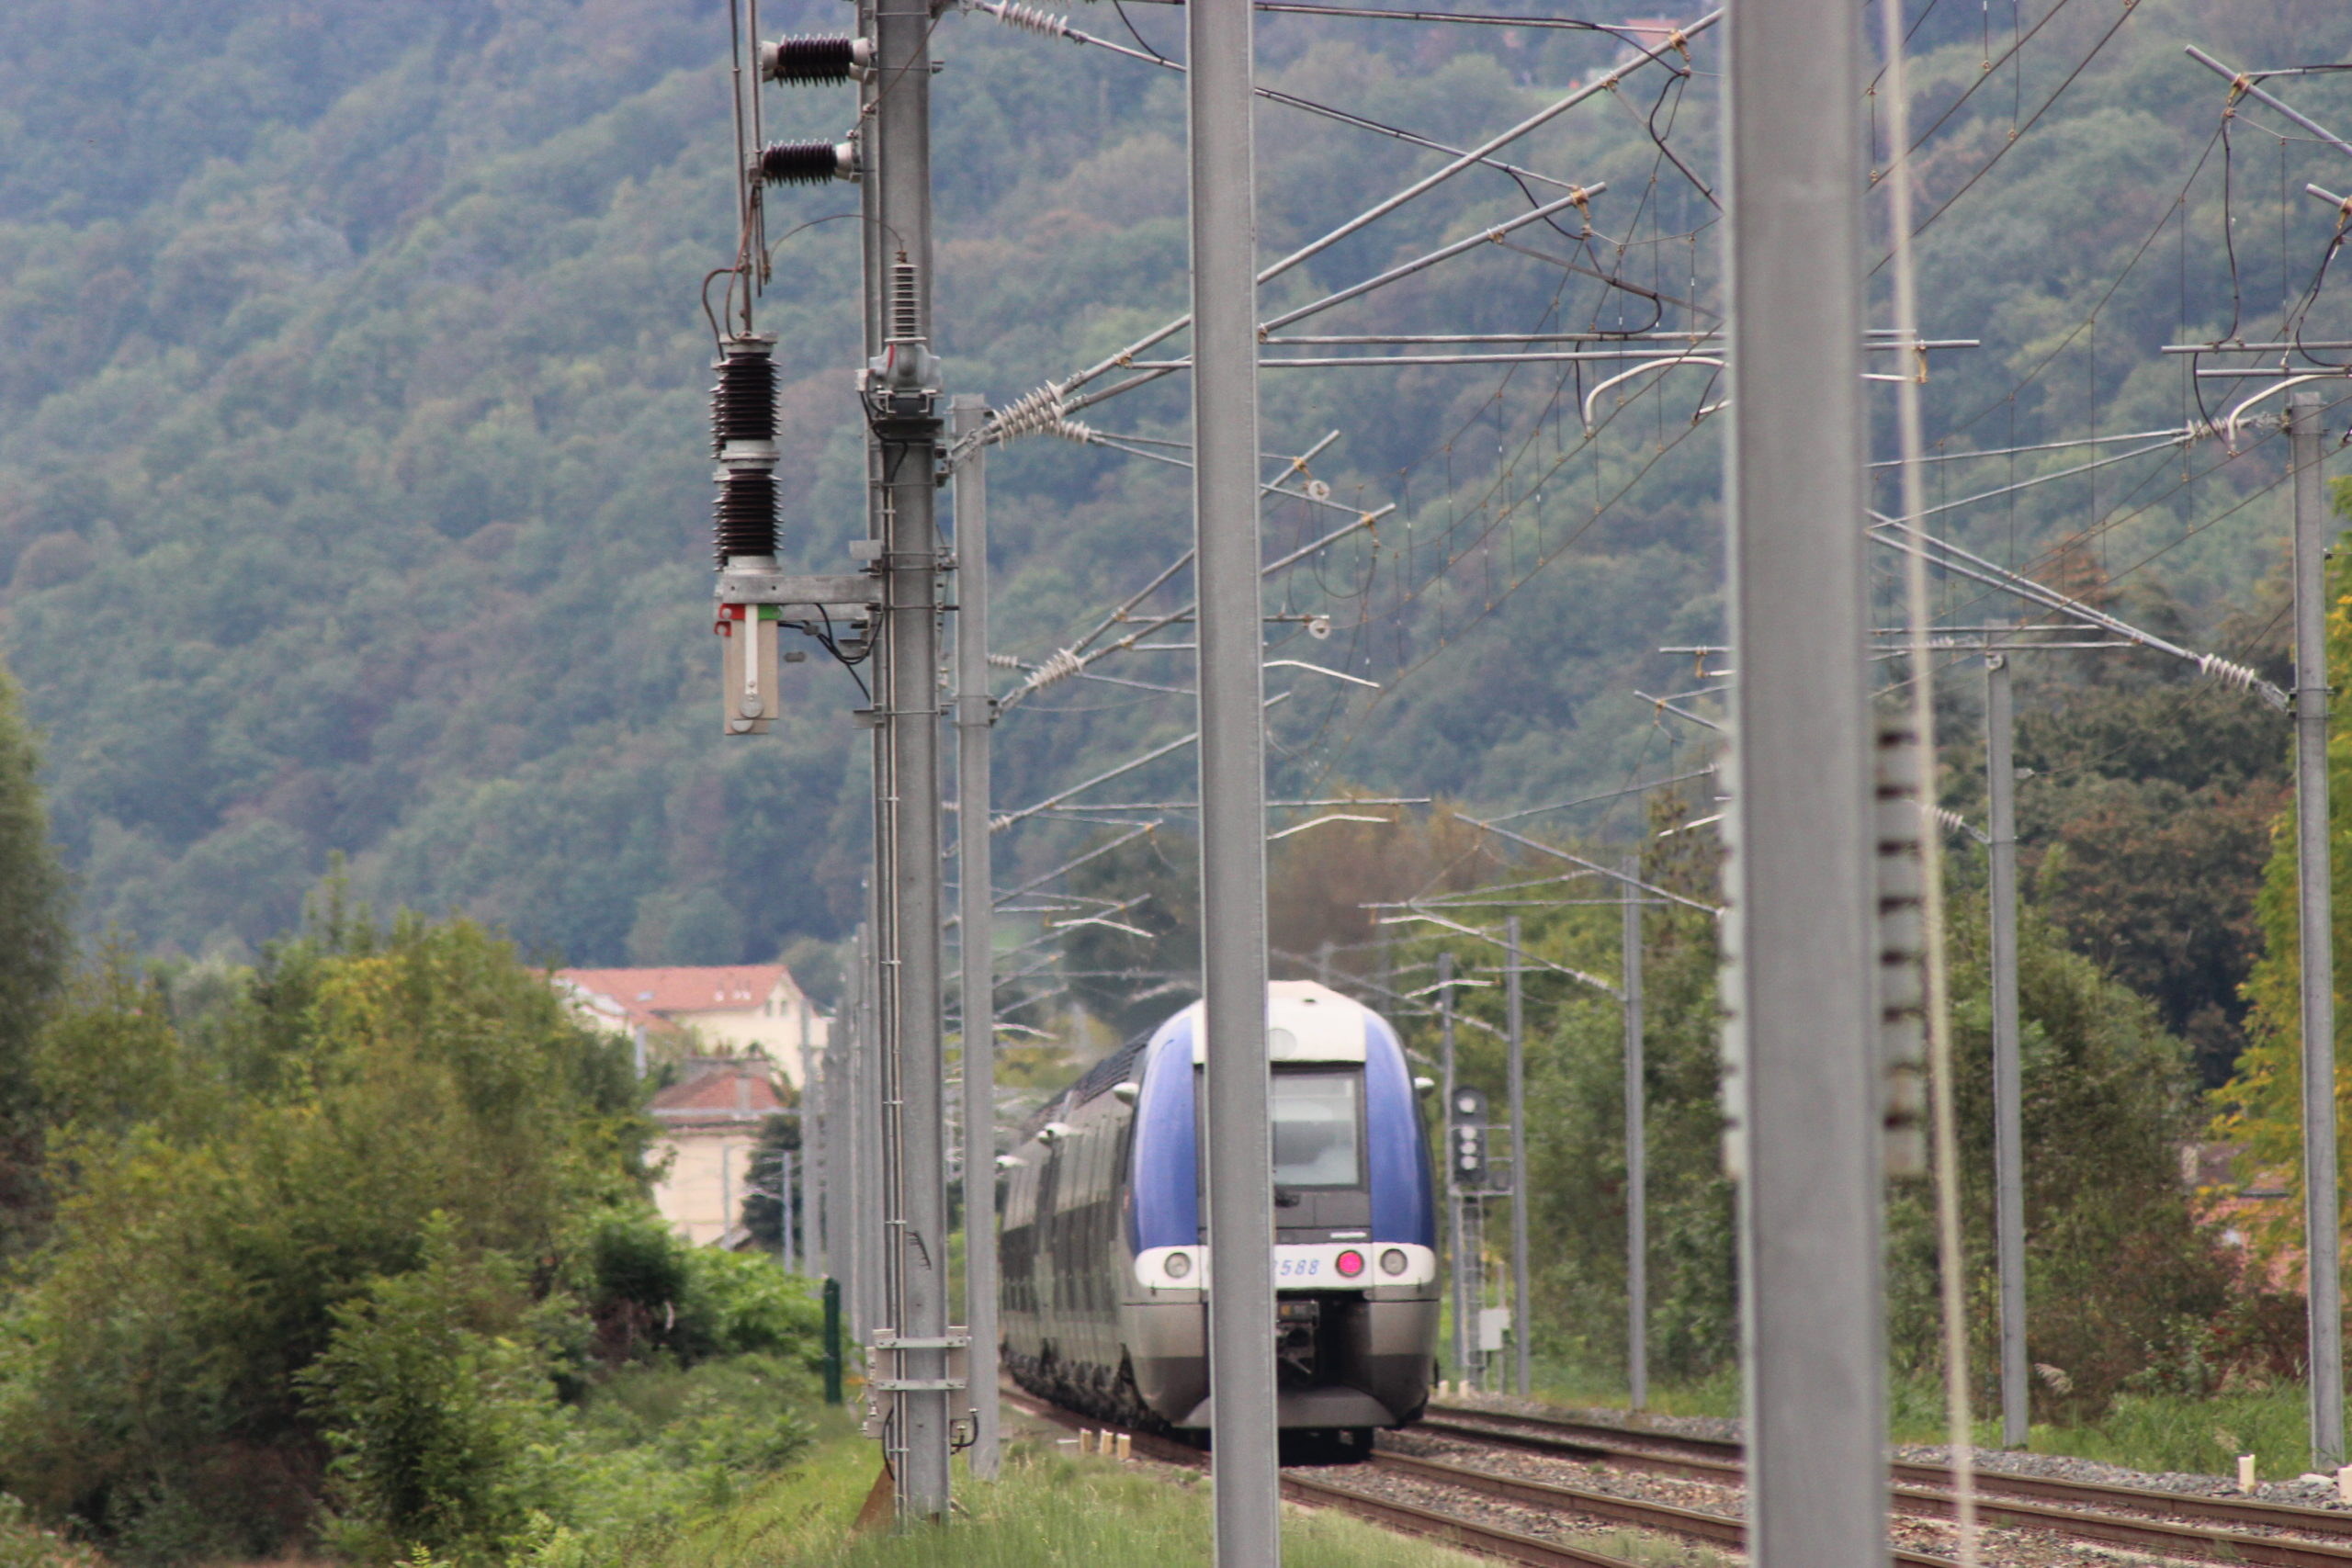 Bipolar VSV at catenary level on SNCF line with train